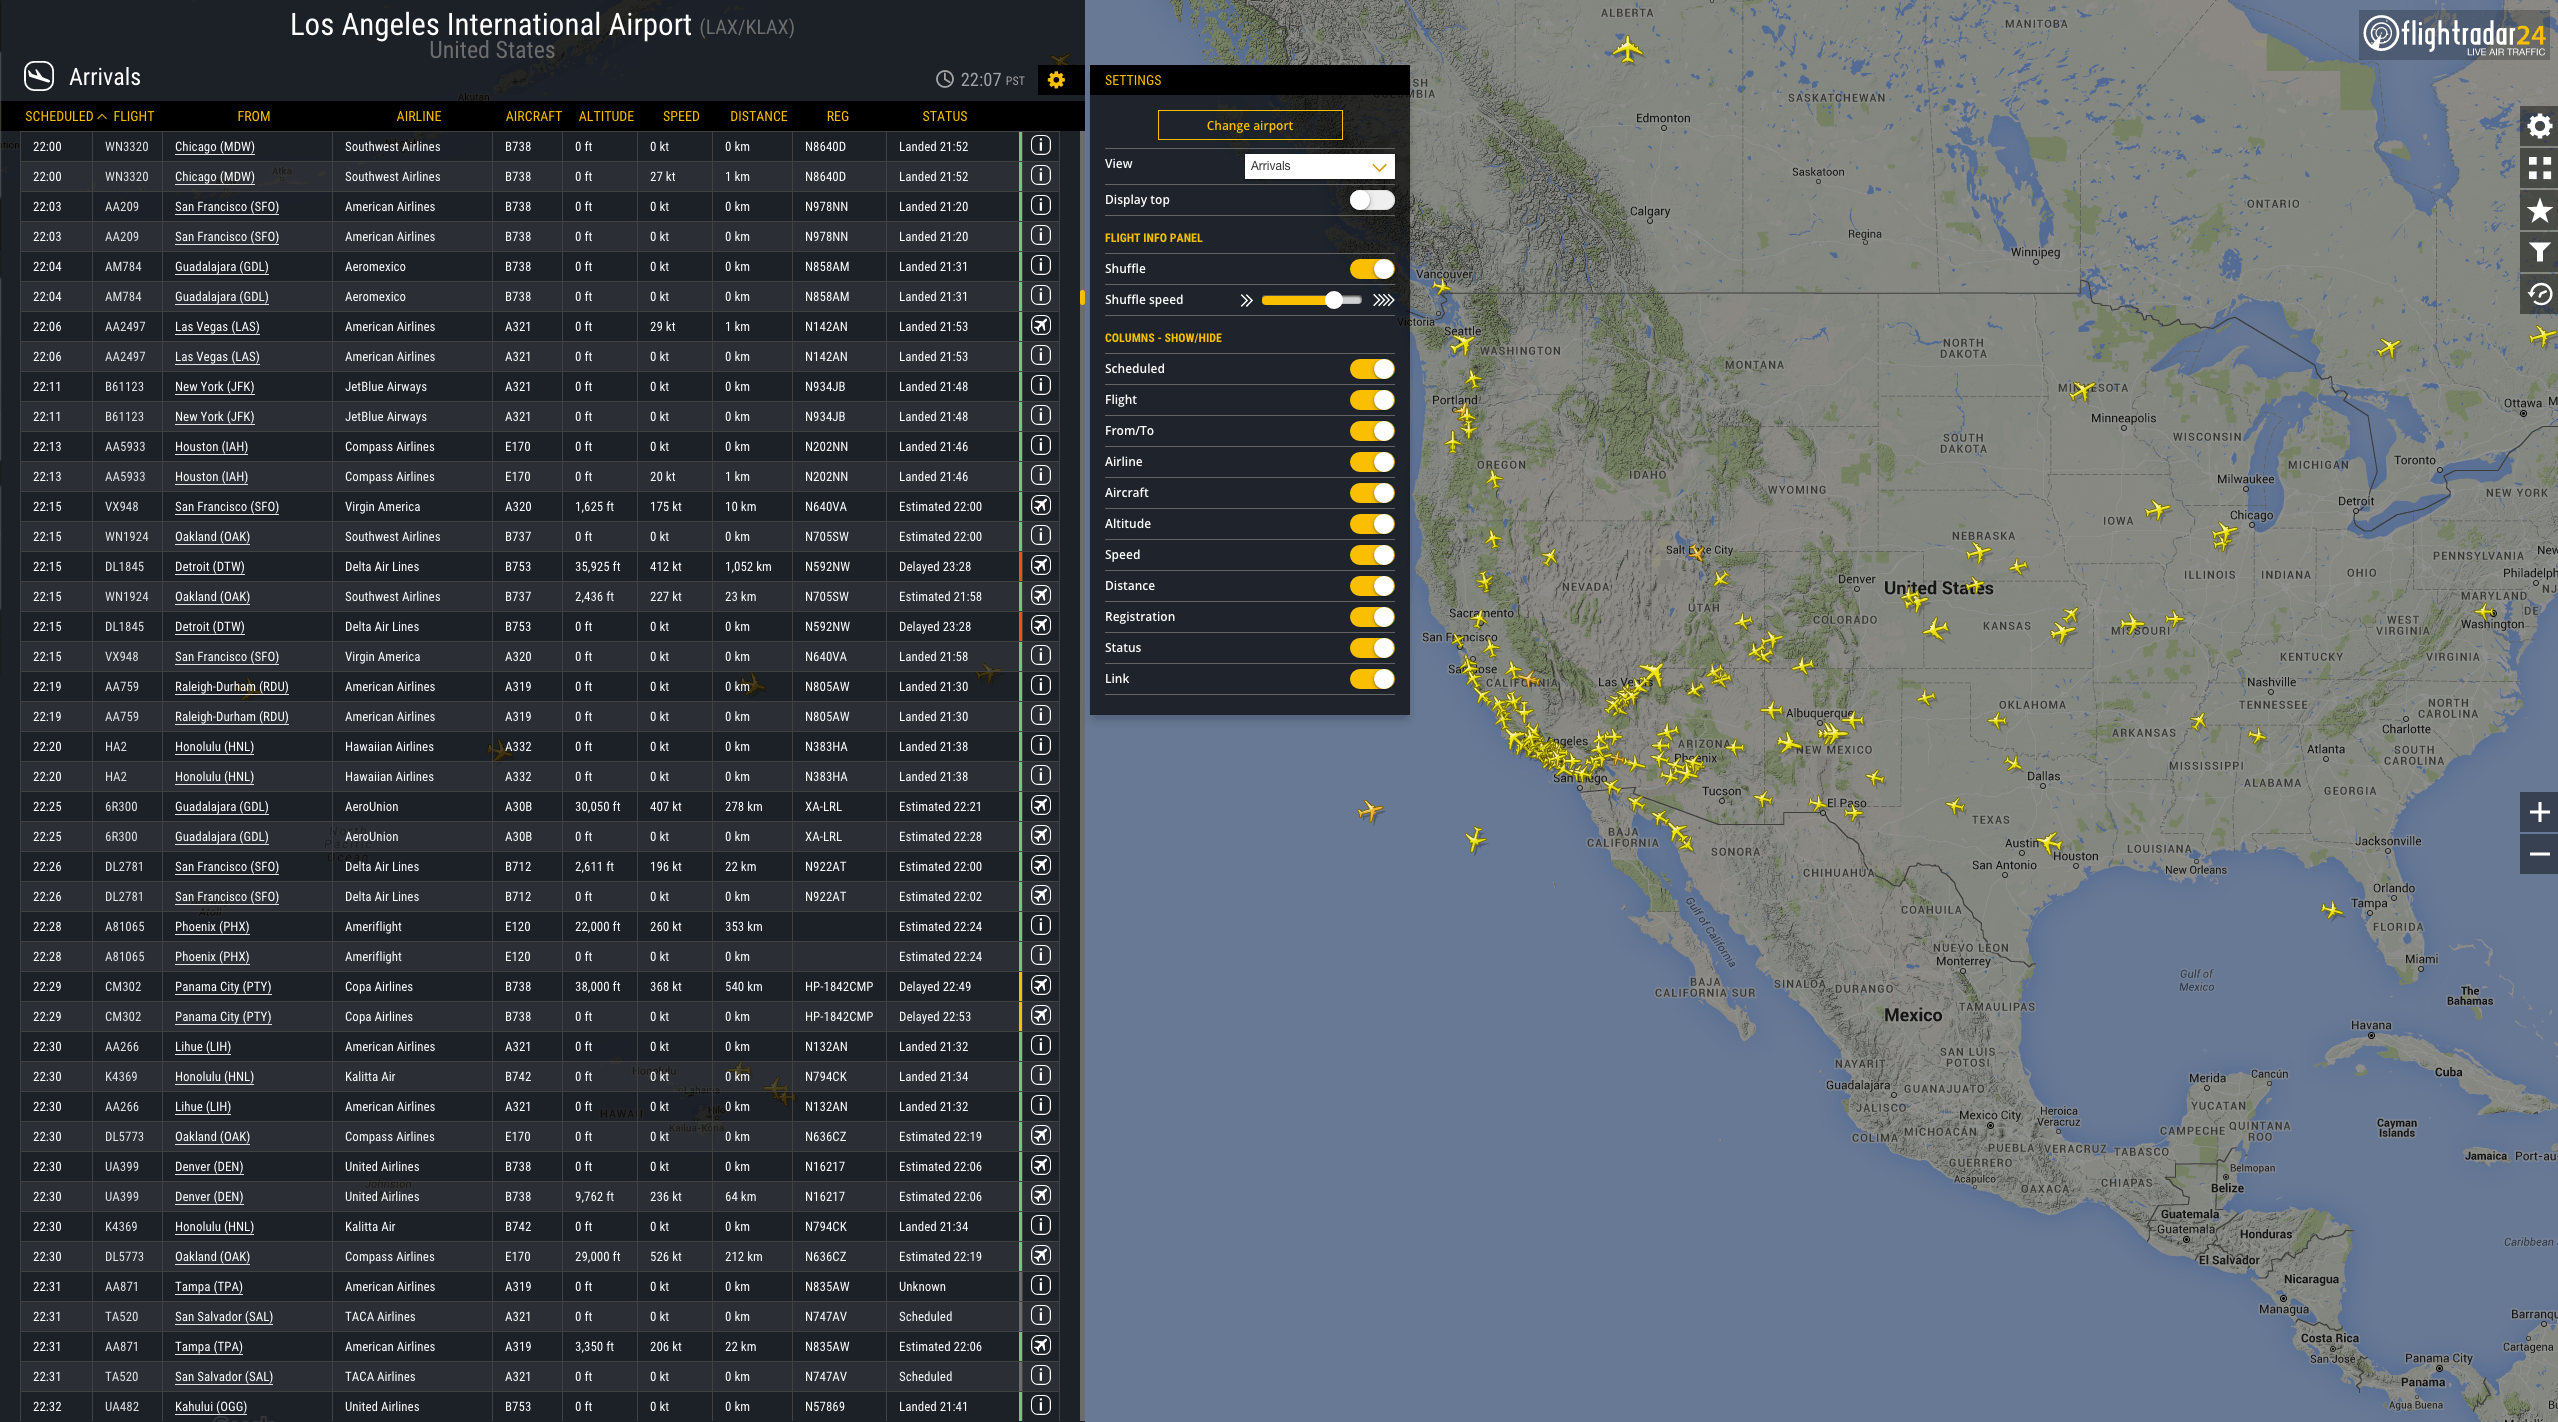 Our new Airport View showing arrivals to LAX as an example, alongside available settings. Click to expand.